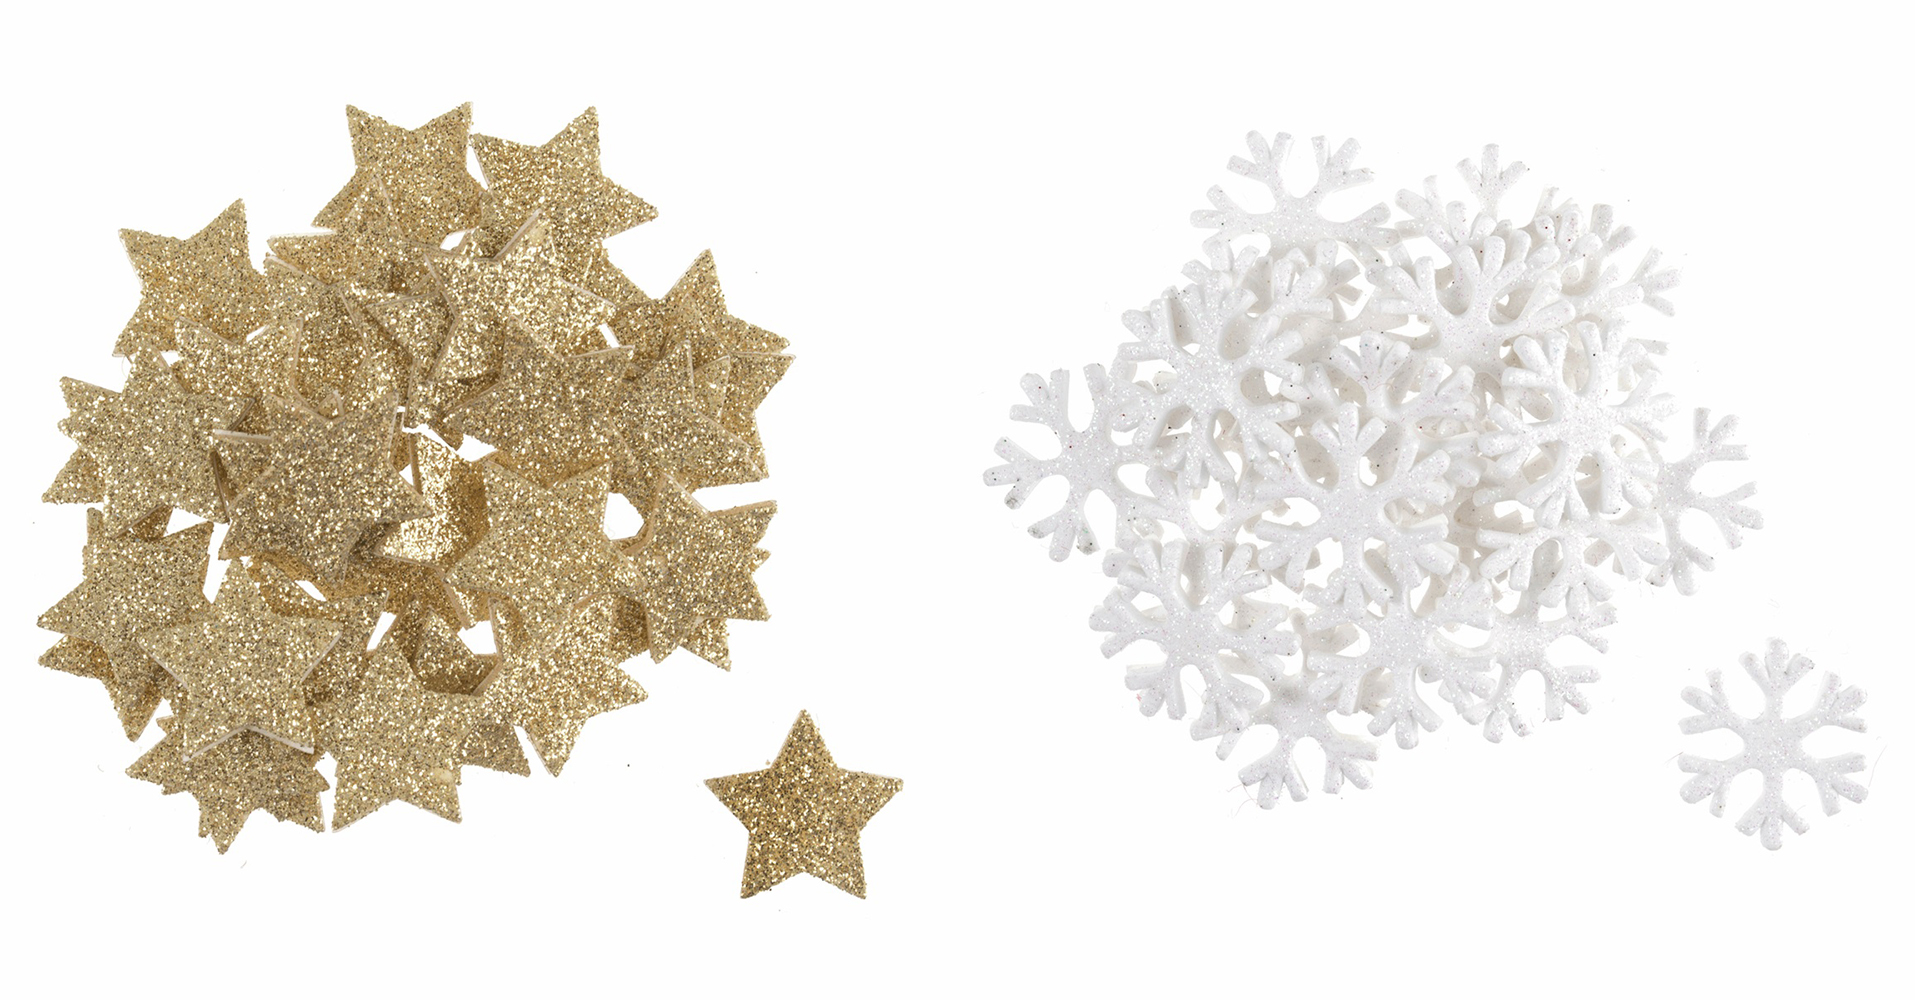 Trimits Glitter Foam Self Adhesive Shapes, Stars or Snowflakes